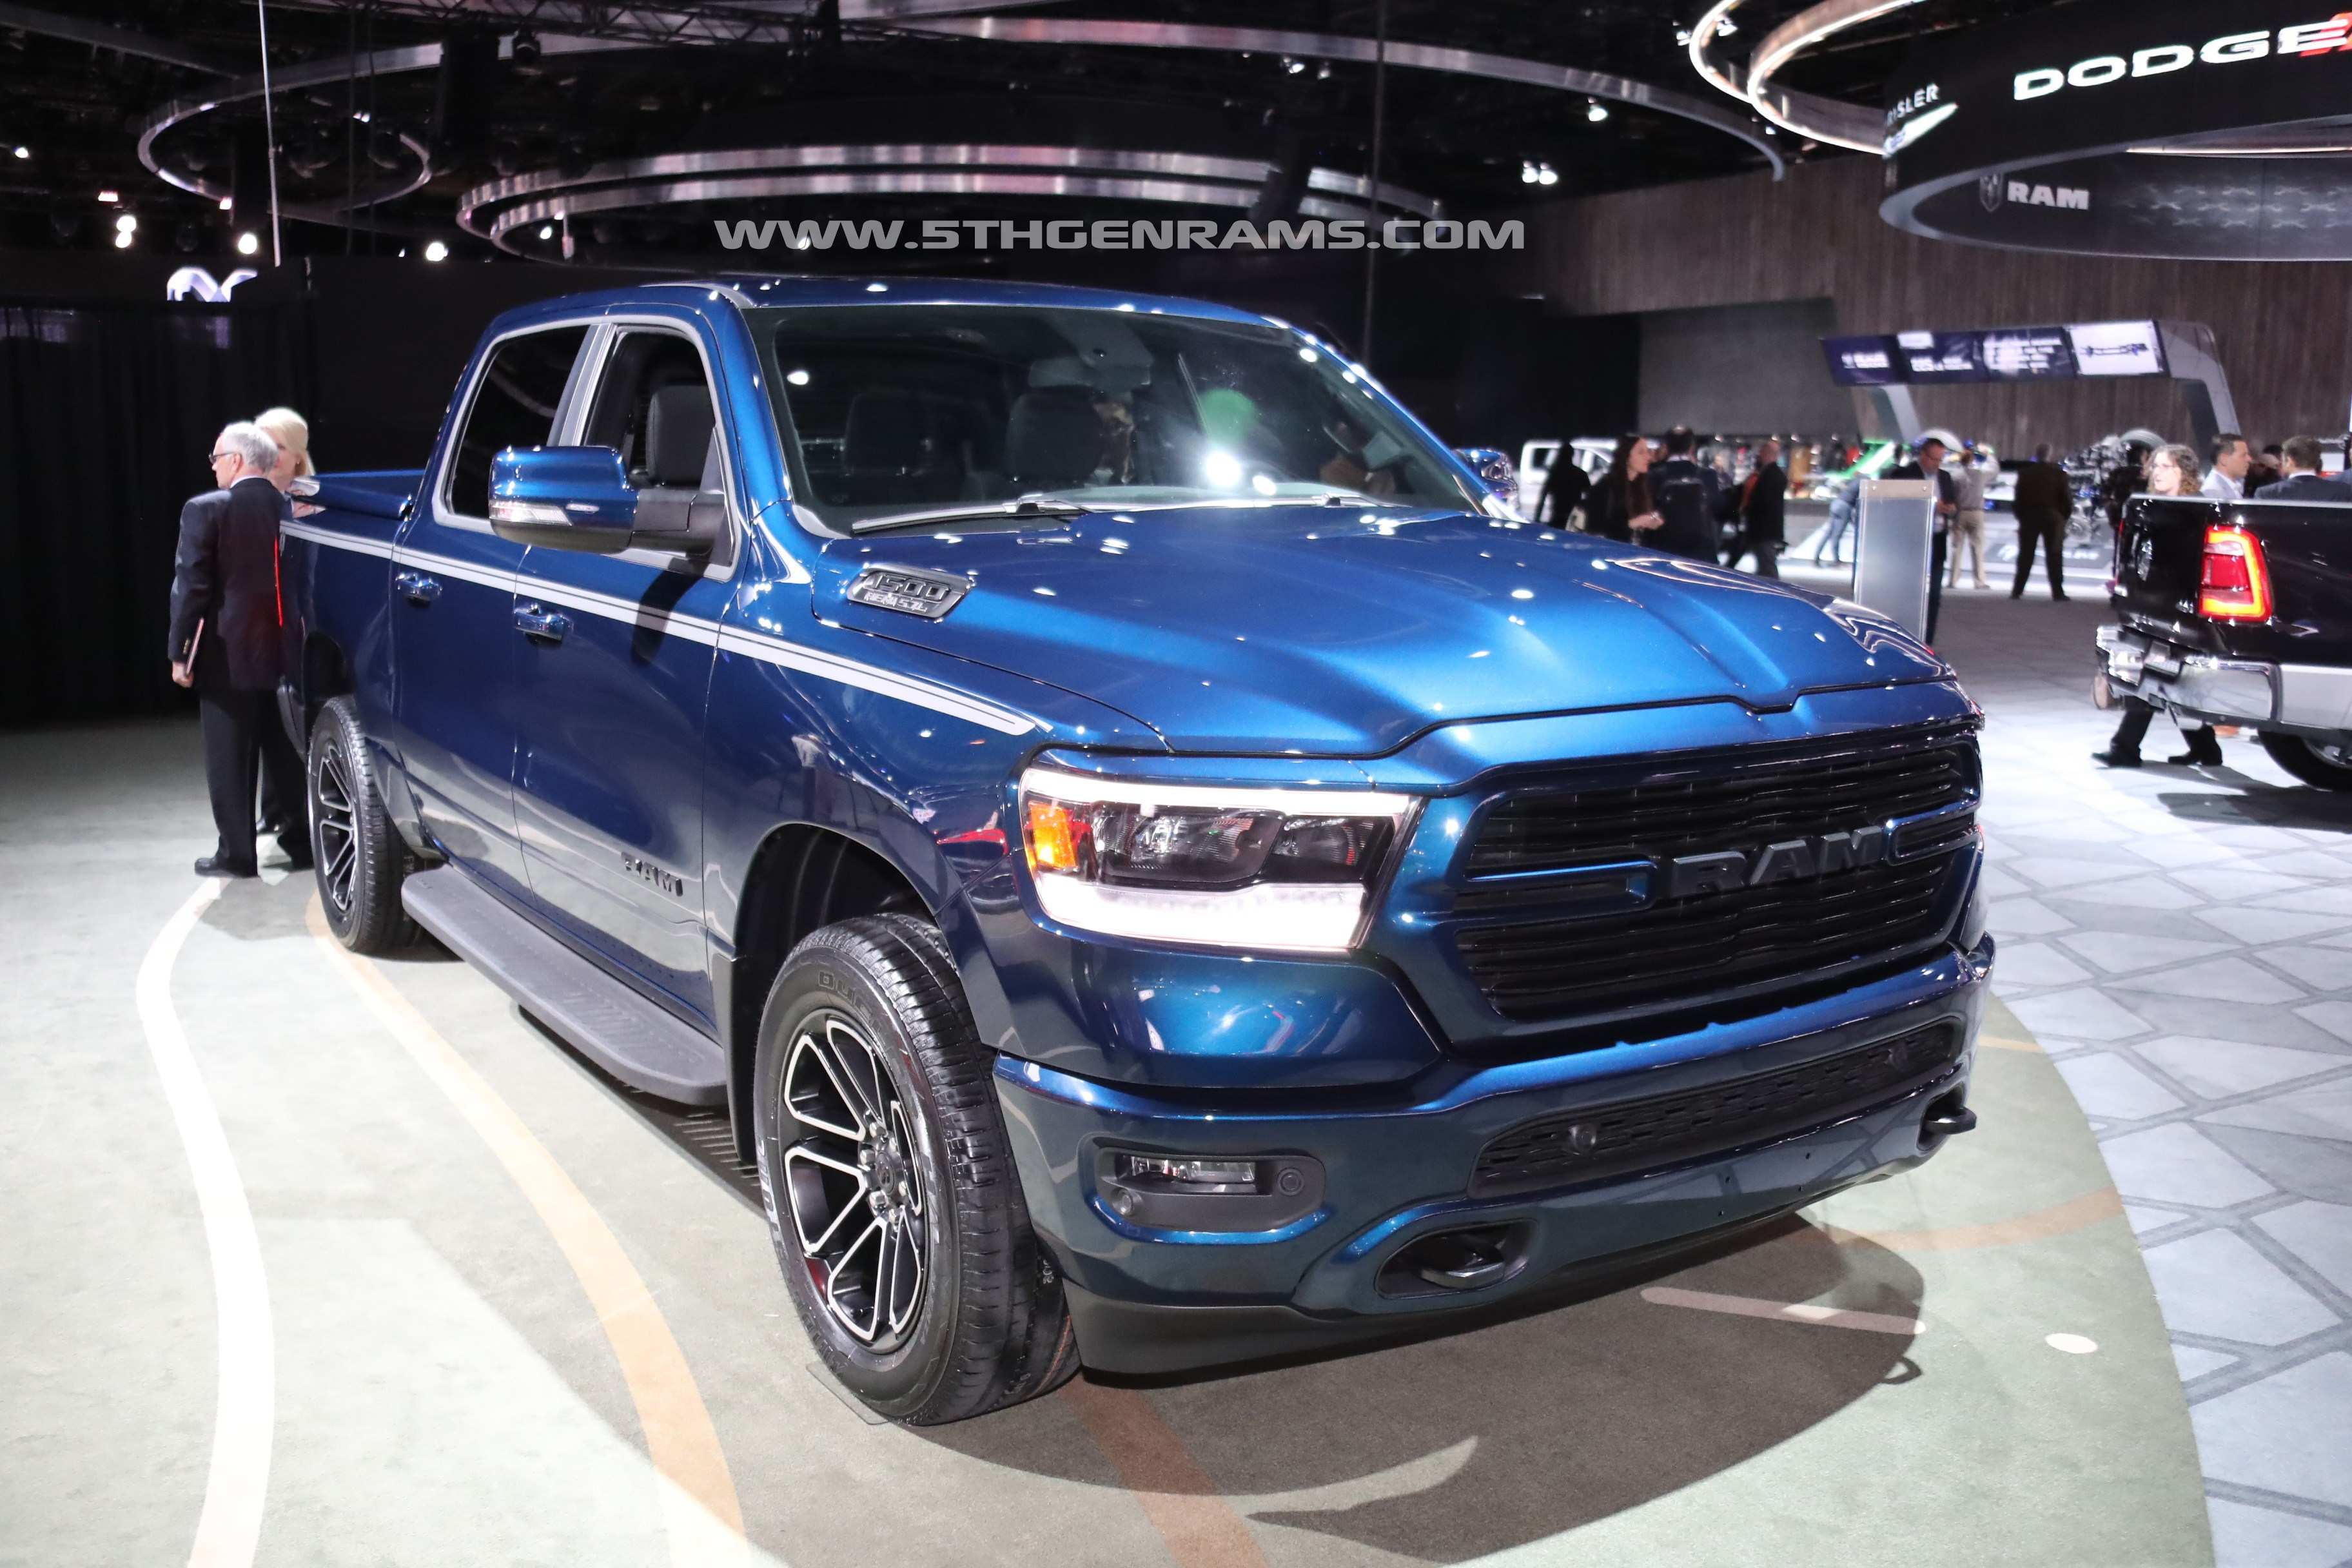 63 All New 2019 Dodge 1500 Sport Overview by 2019 Dodge 1500 Sport